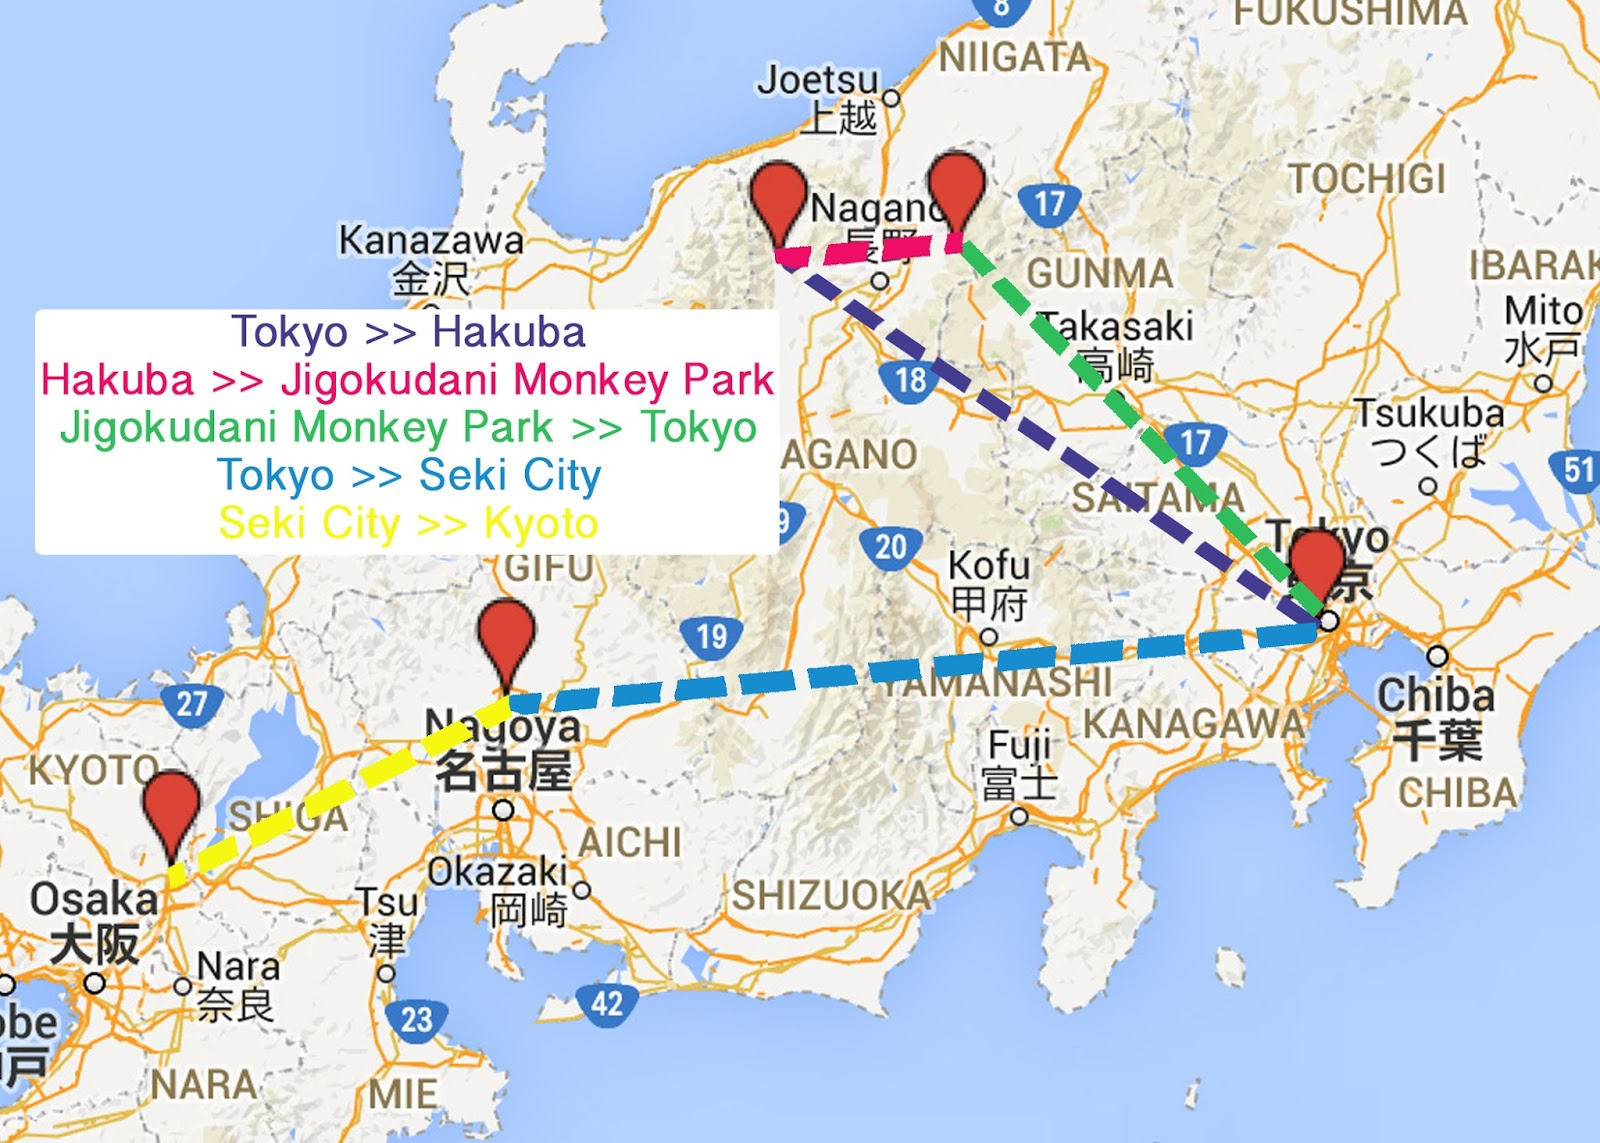 Mr Mrs O Holiday Trip To Mainland Japan Route And Travel Info - Japan jetstar map